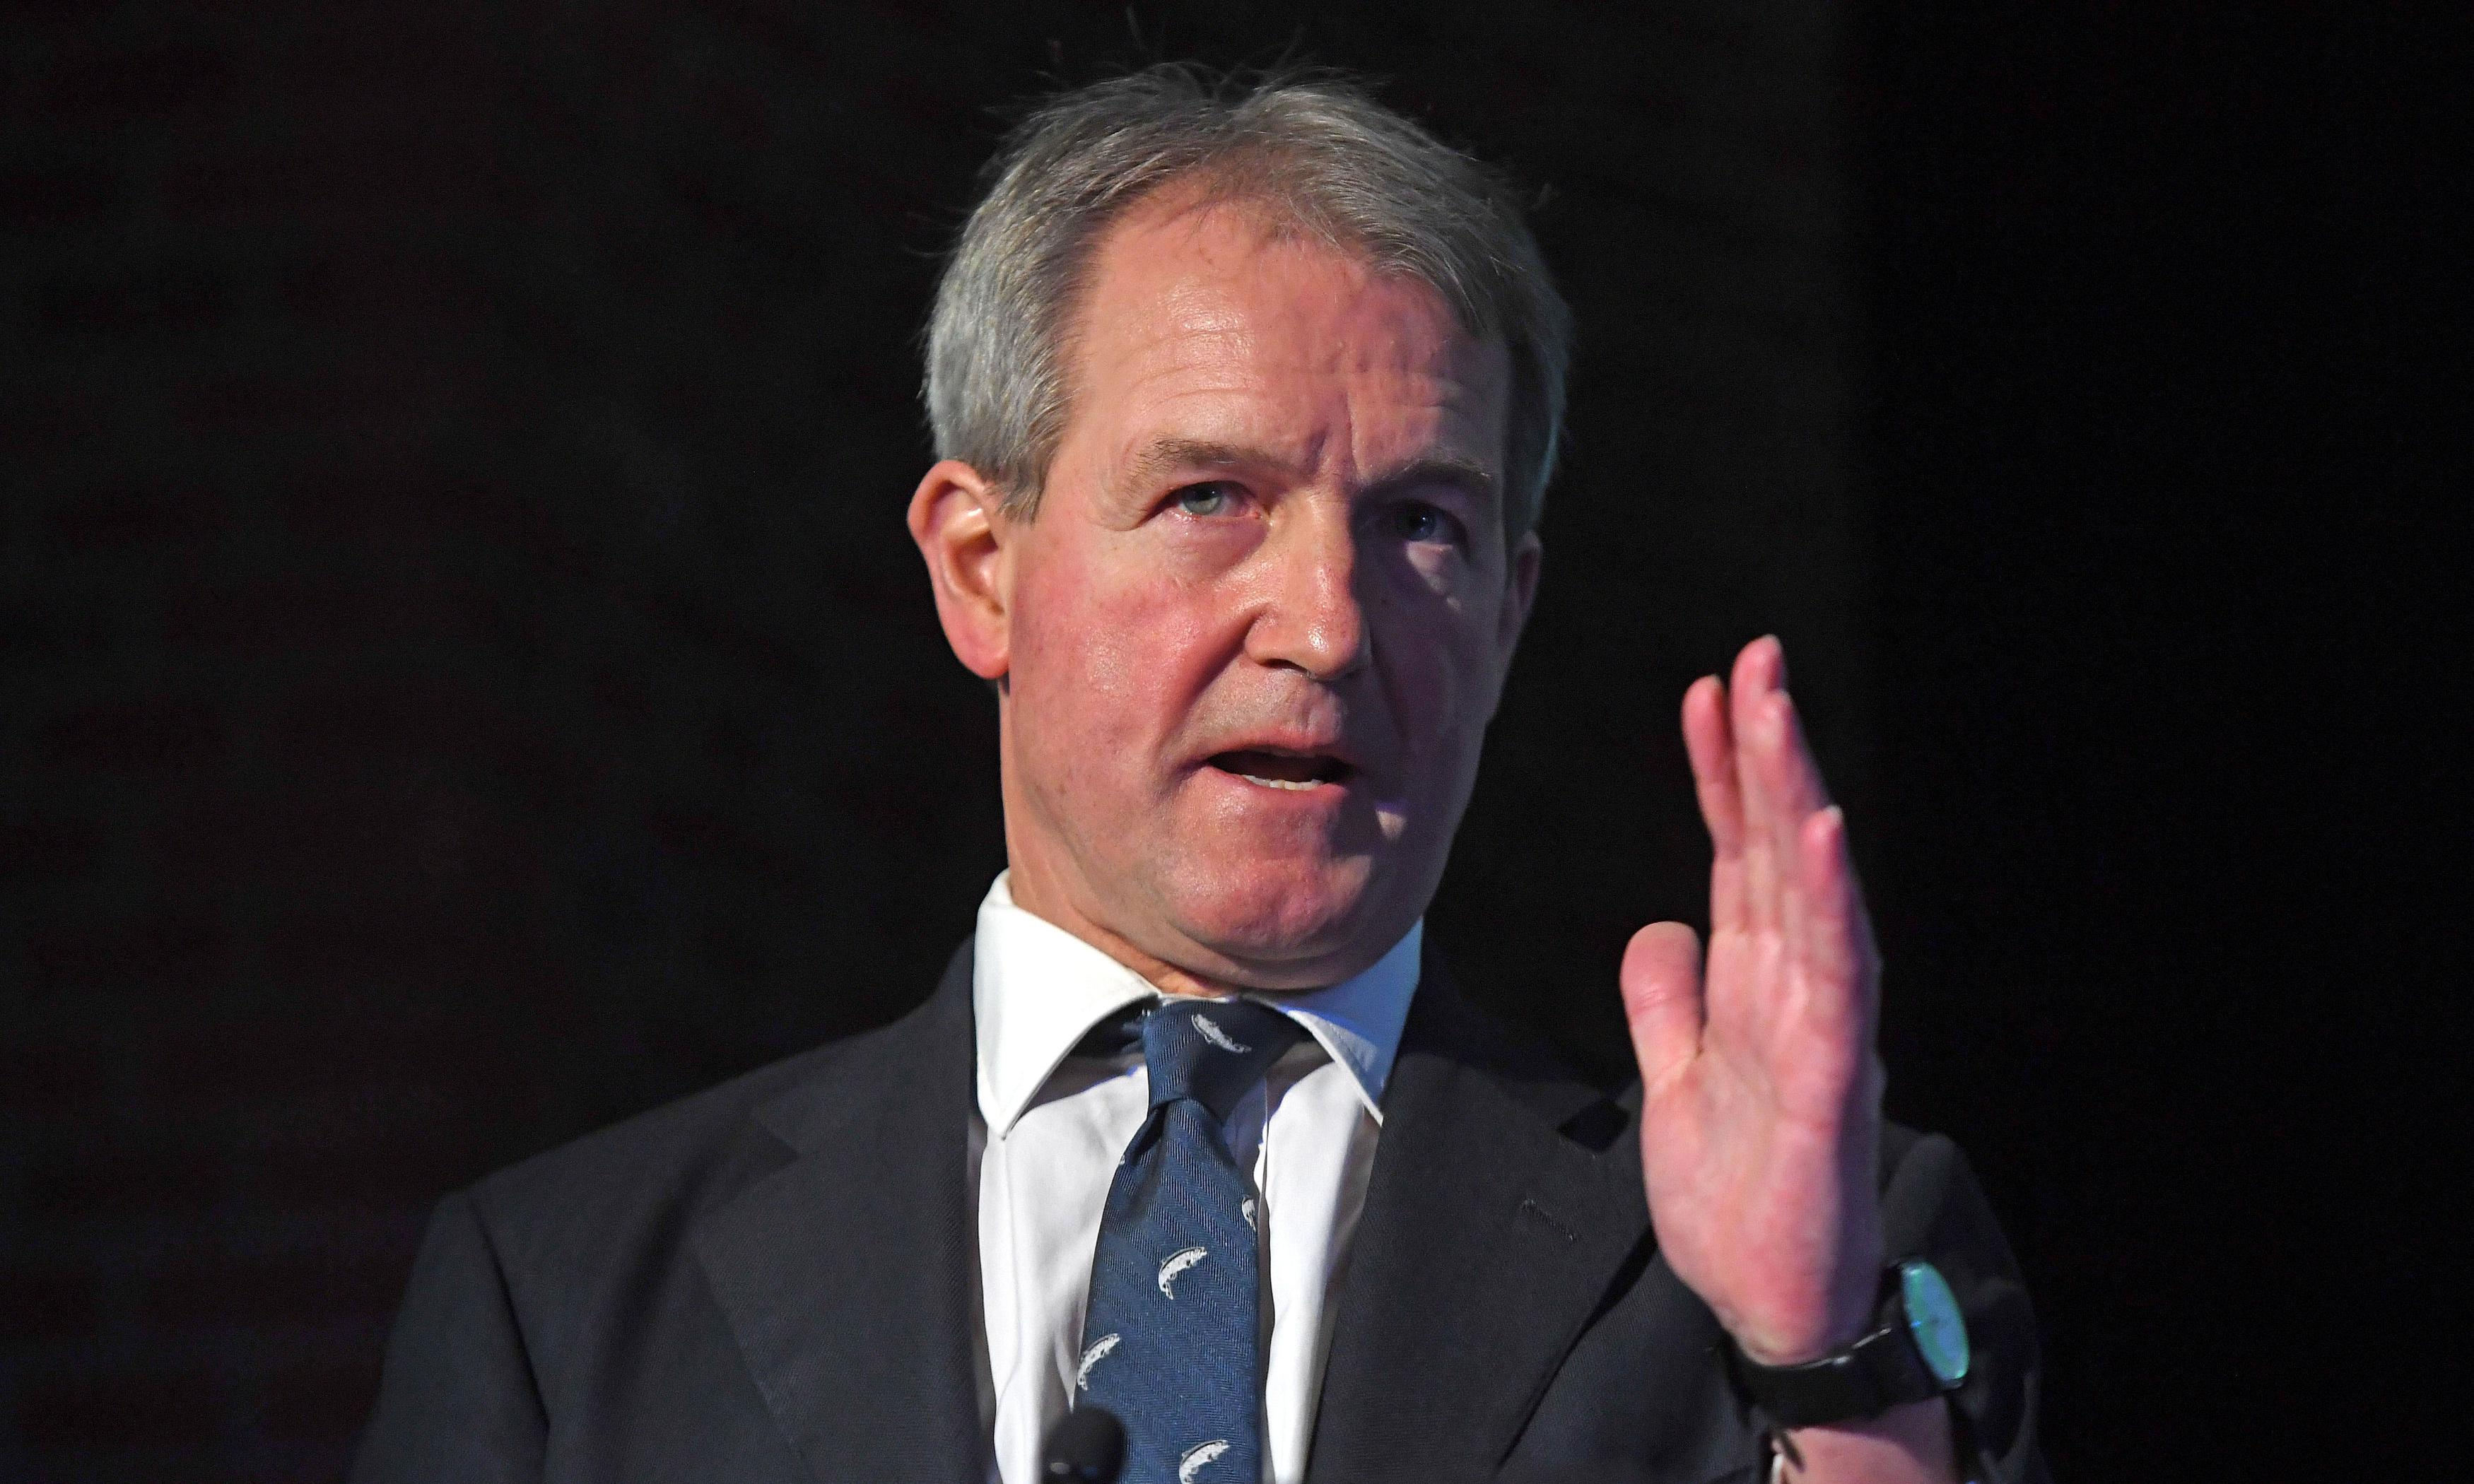 Owen Paterson trips worth £39,000 funded by unknown donors